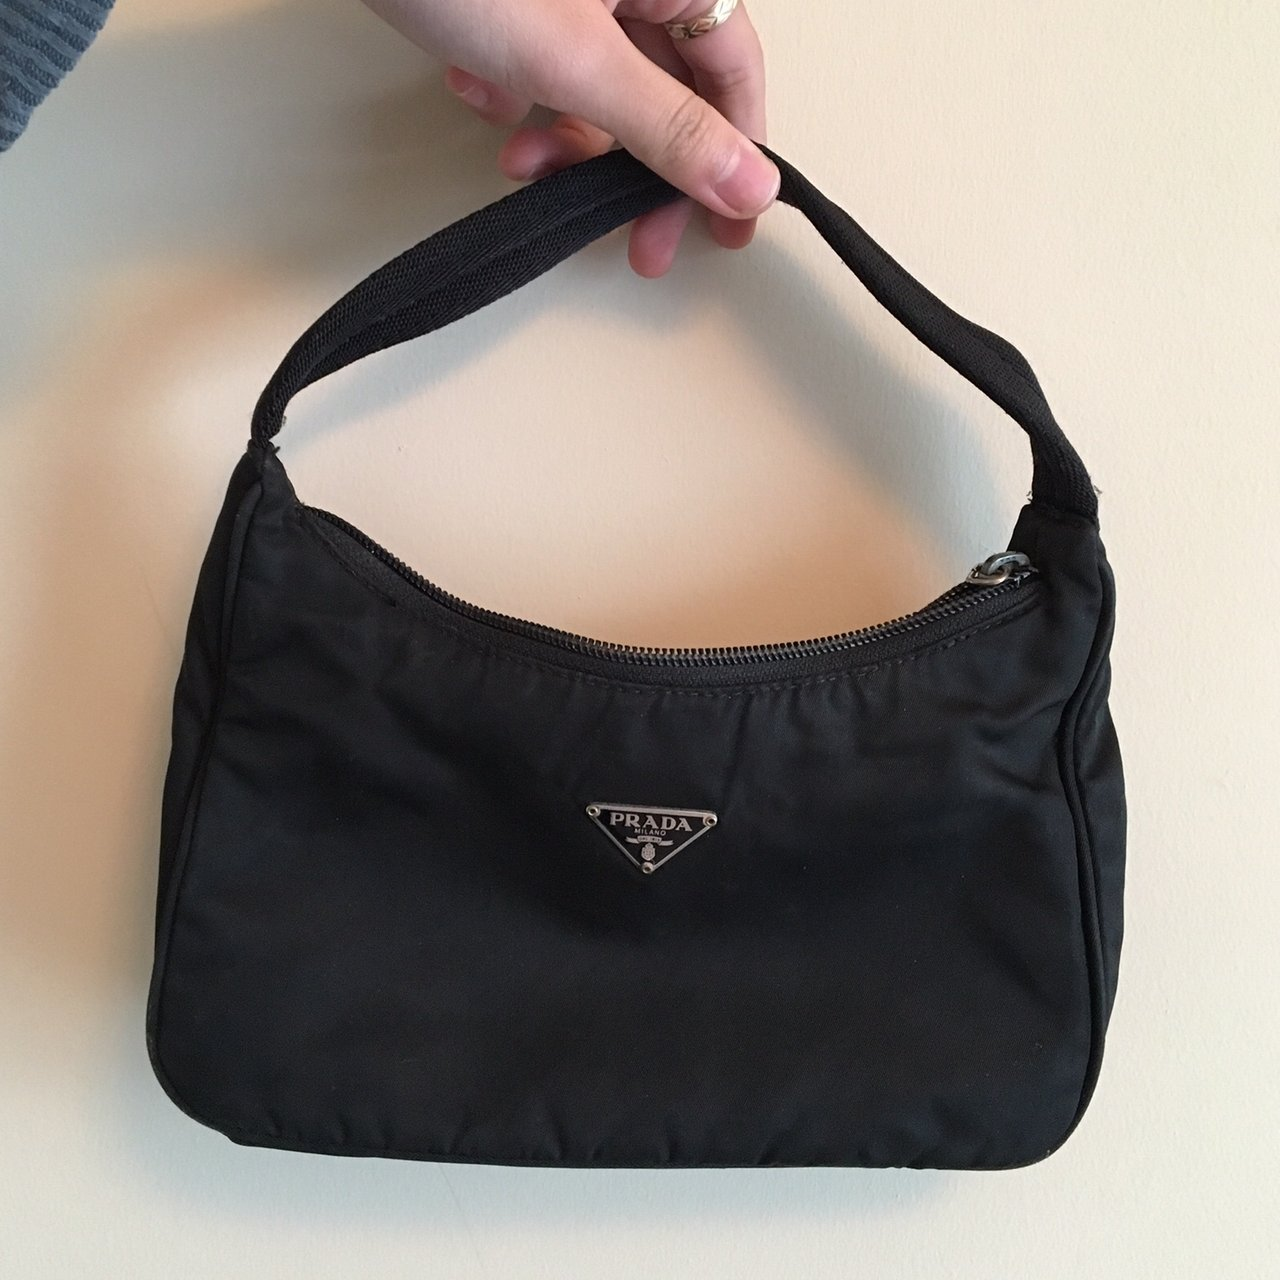 b3c8e76ad97164 ... Pack Waist Pouch 231475 Black Nylon Cross Body Bag Source · PRADA  Tessuto Sport Luxury Bags & Wallets on Carousell Share This Listing Source  · Prada ...